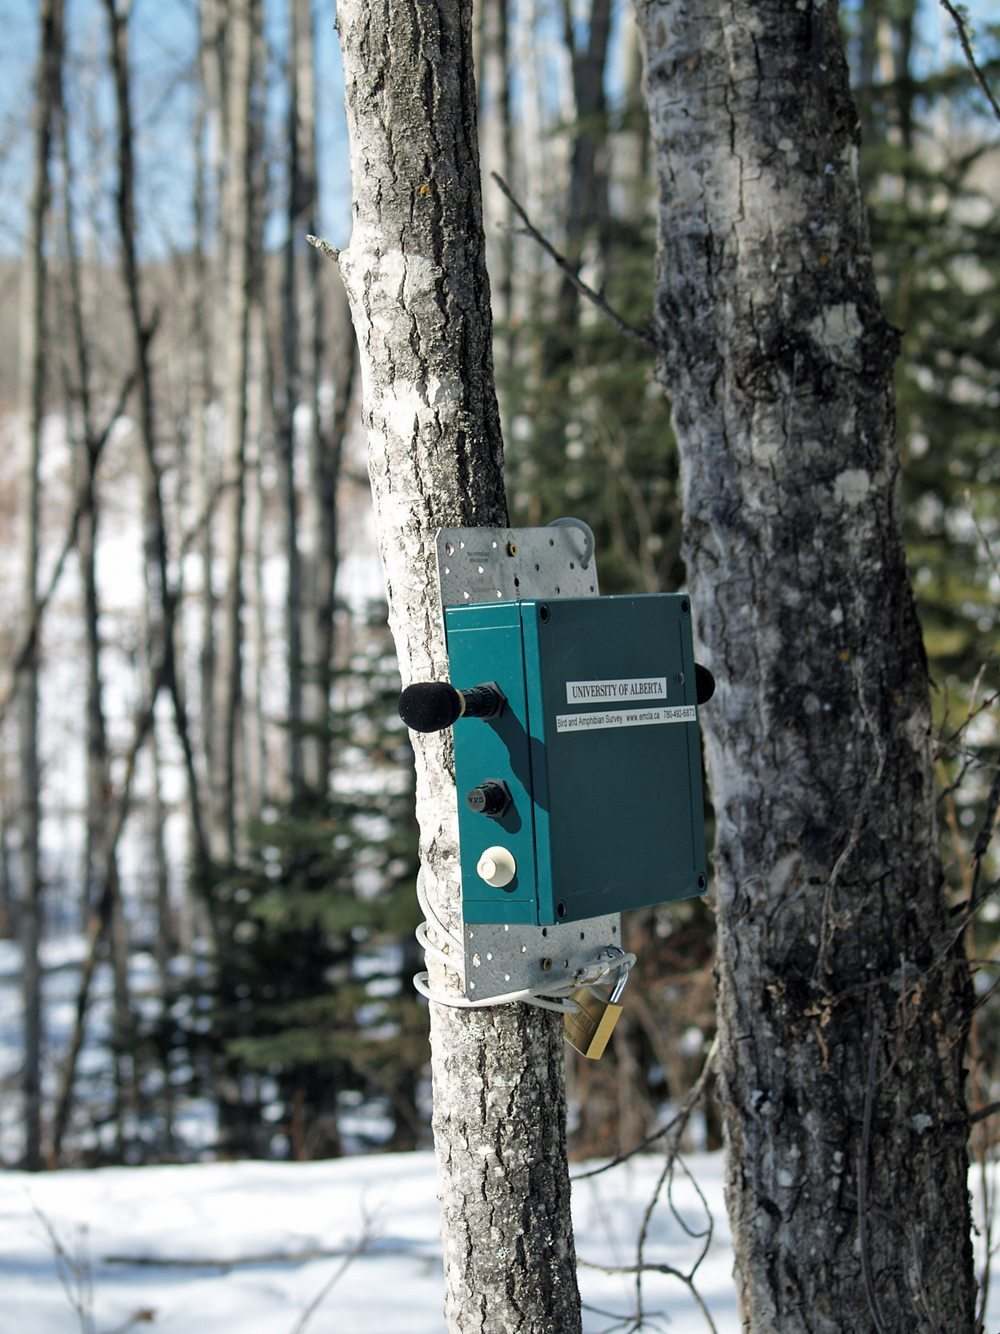 This bioacoustic unit attached to an aspen tree continuously records the sounds of wildlife.